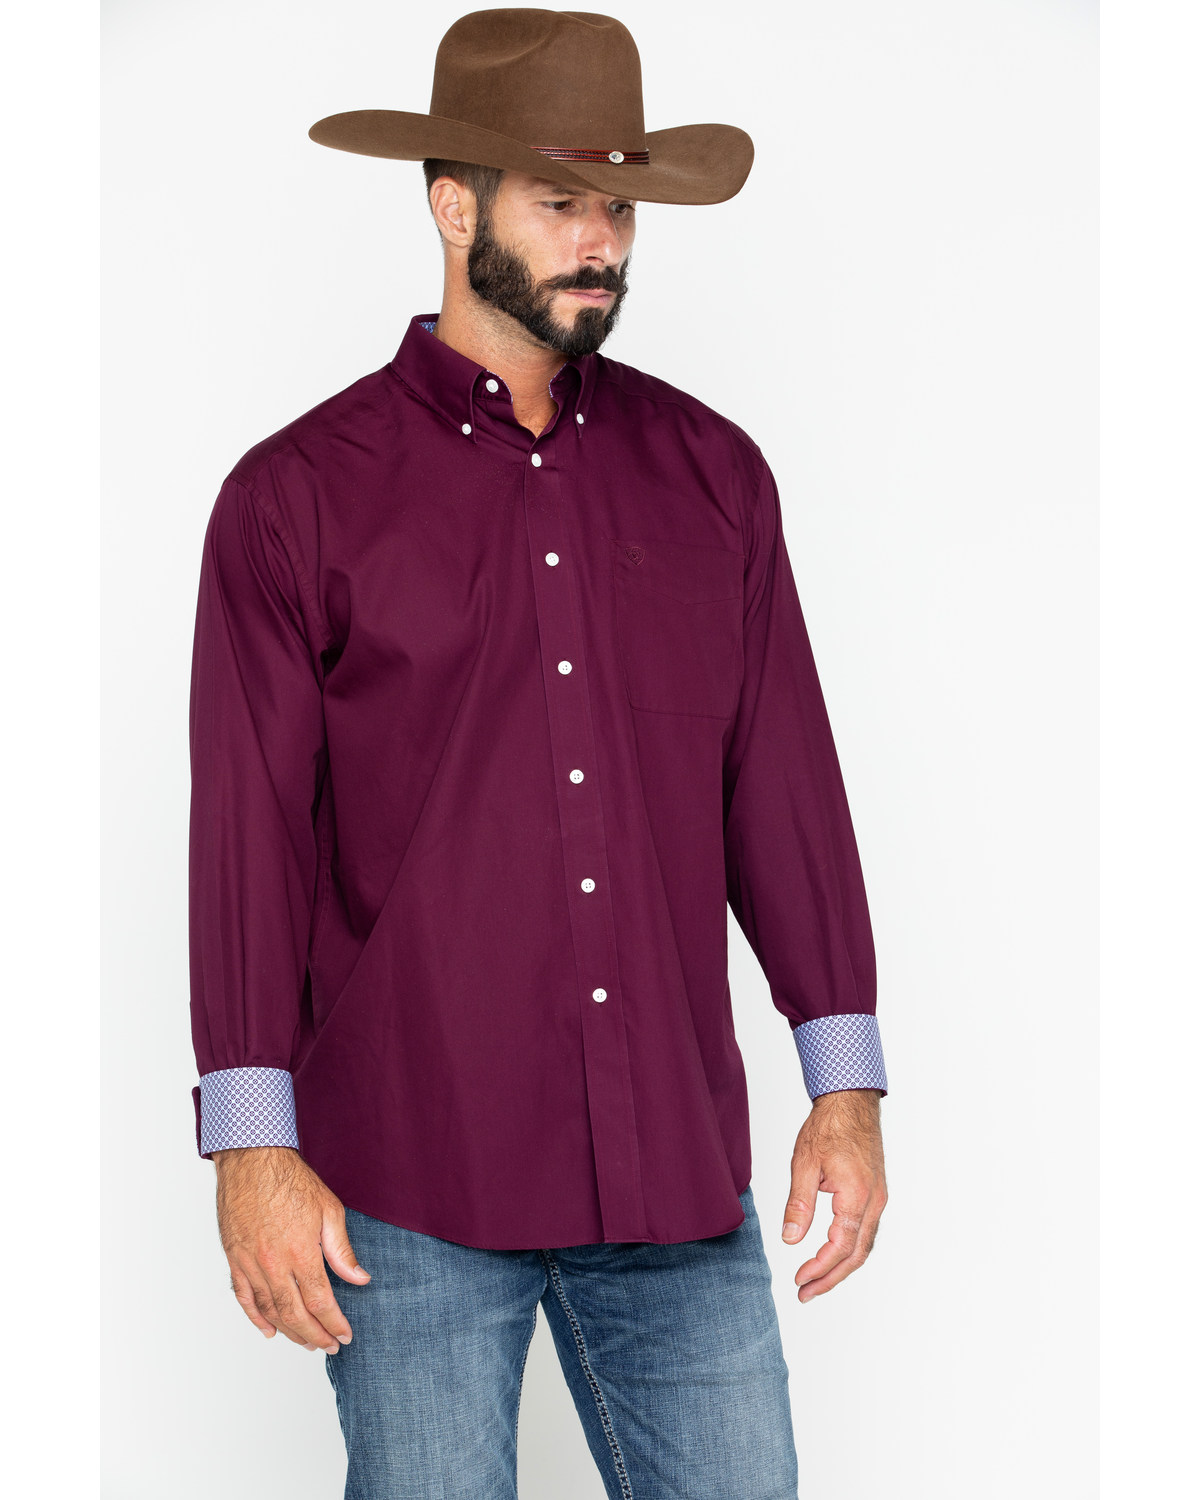 07174d5d Zoomed Image Ariat Men's Maroon Solid Twill Shirt , Maroon, ...